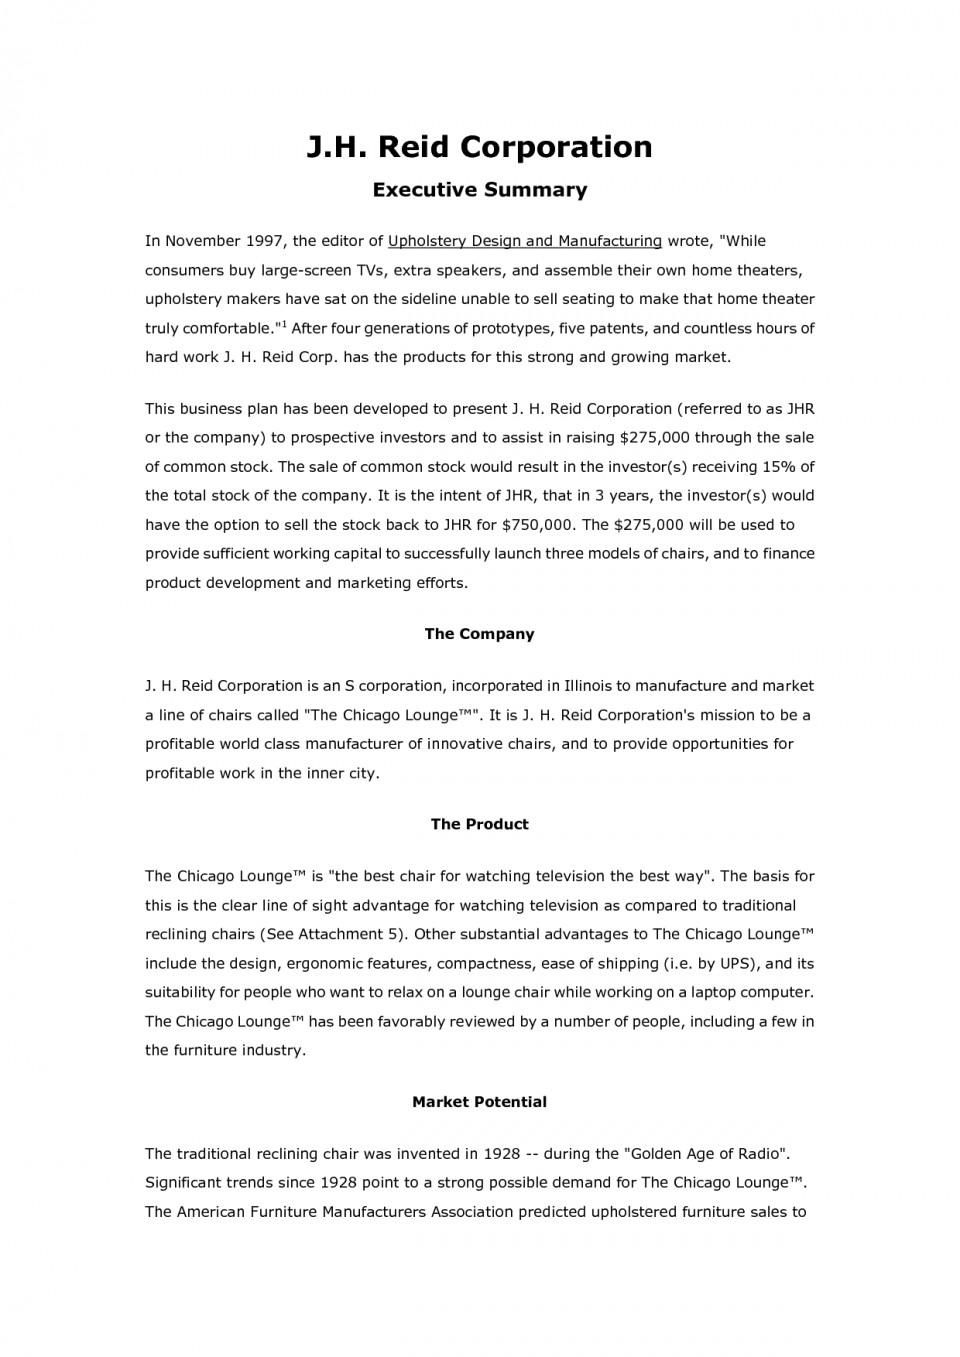 016 Hard Work Essay Example Business Plan Outstanding 960